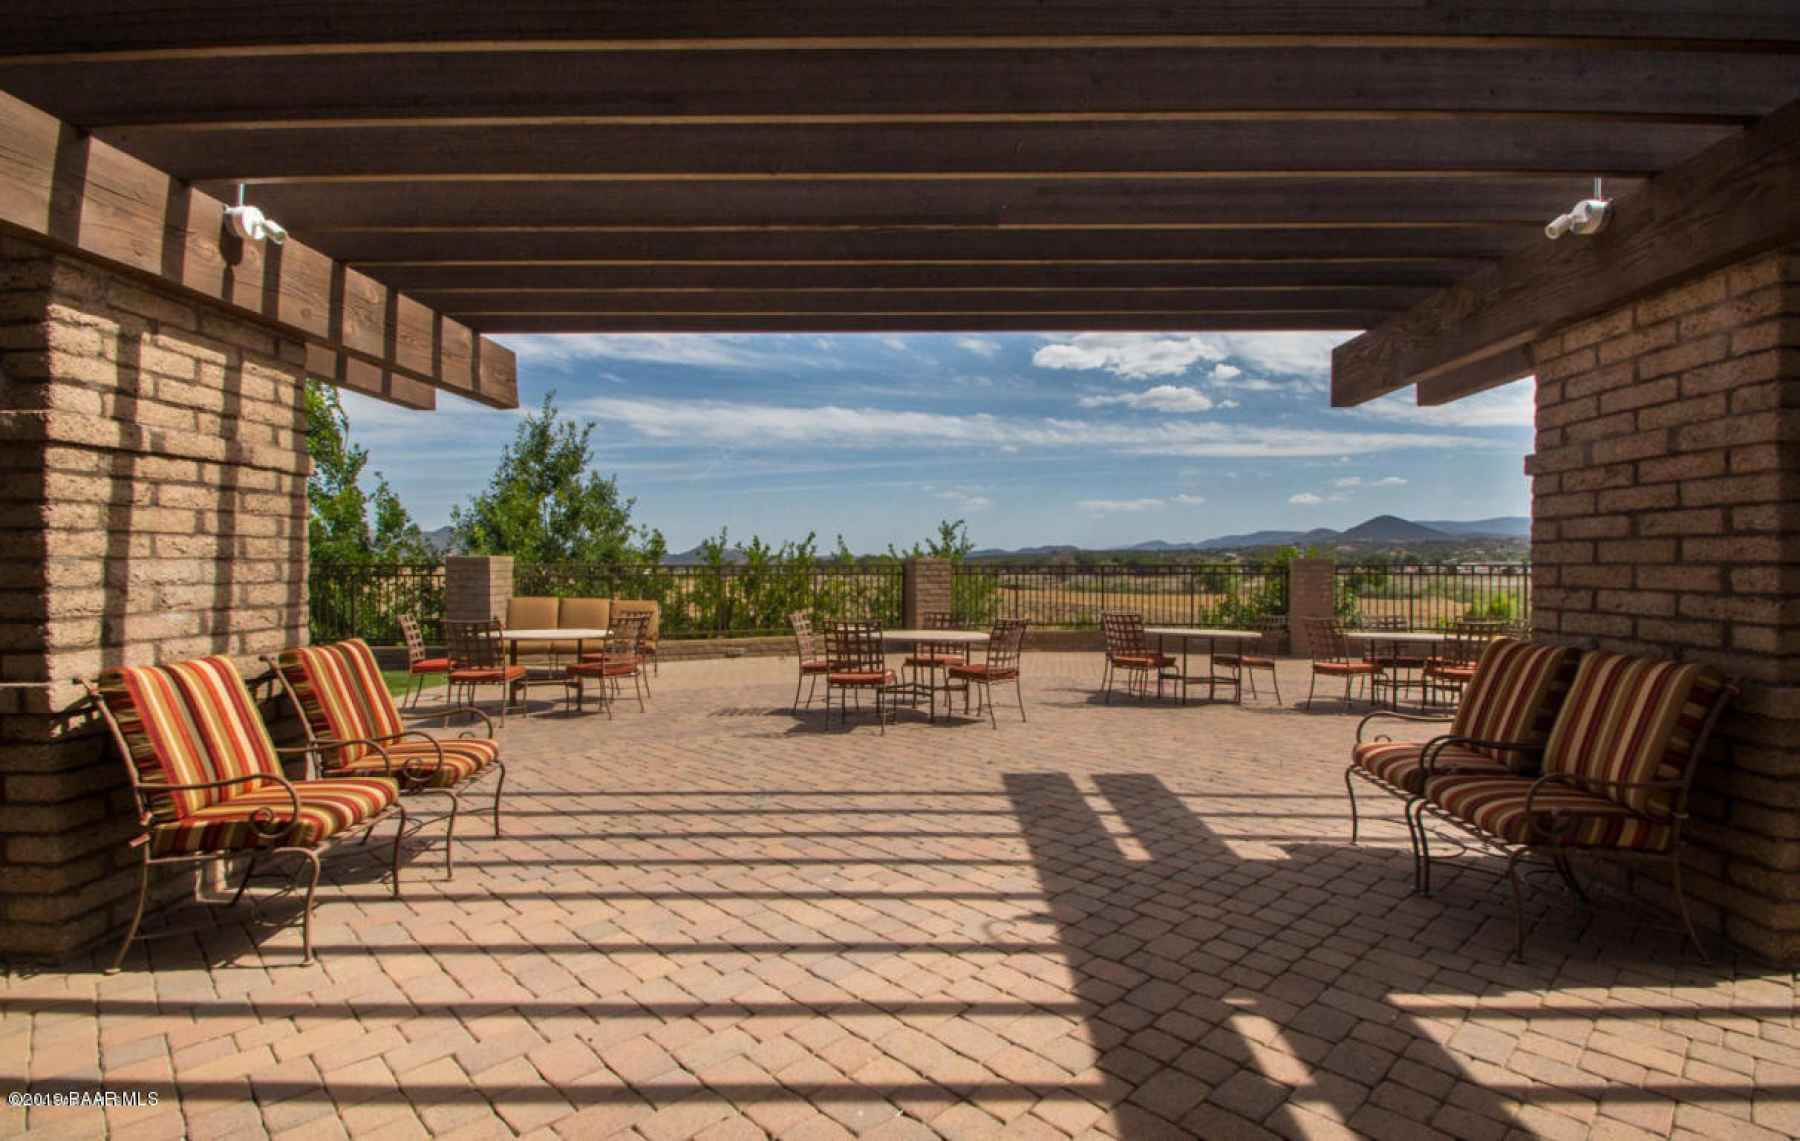 Outdoor Patio and Dining Area